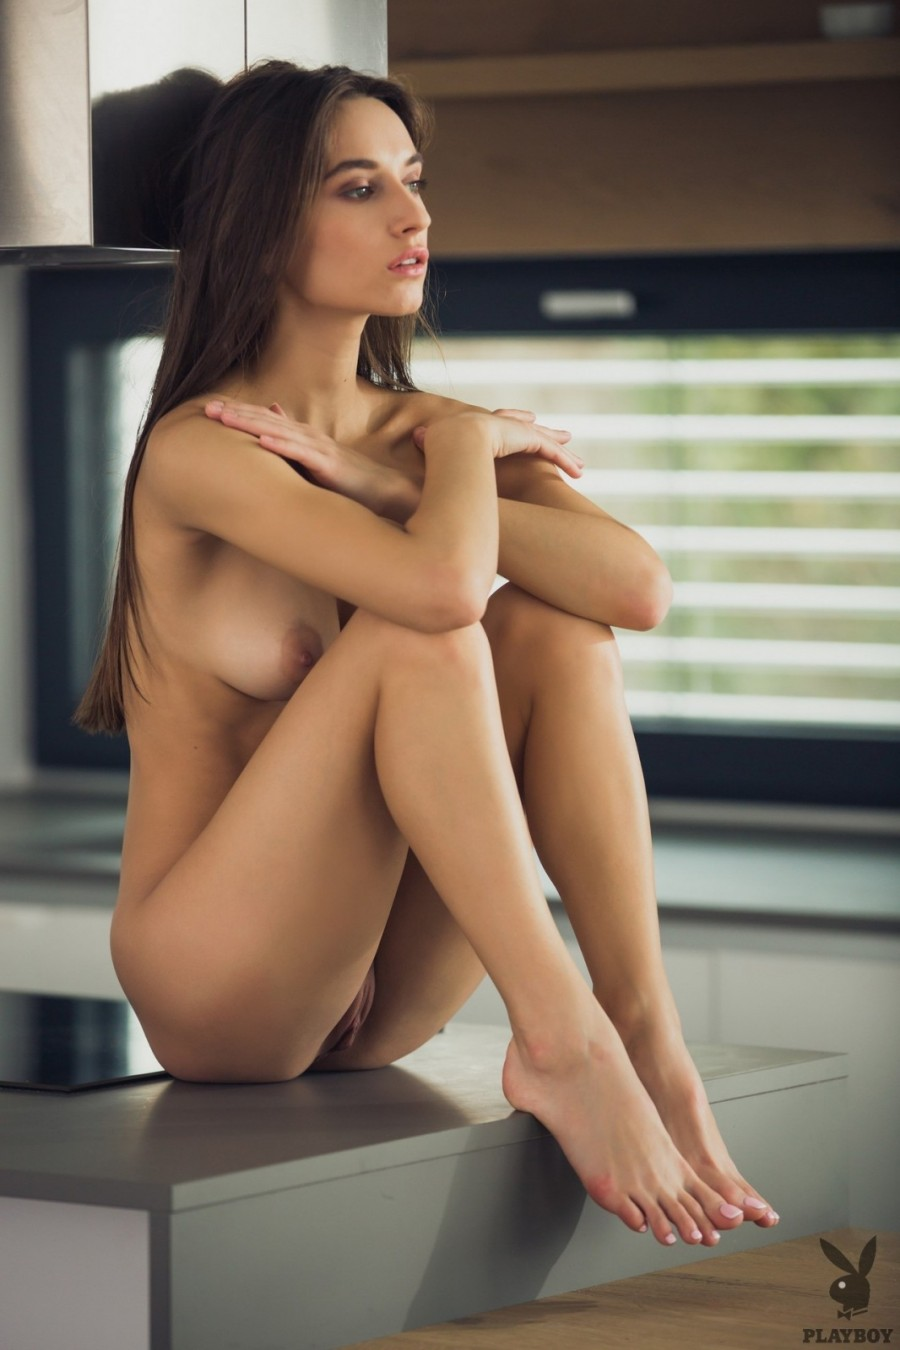 Slim hottie turns kitchen into a stage